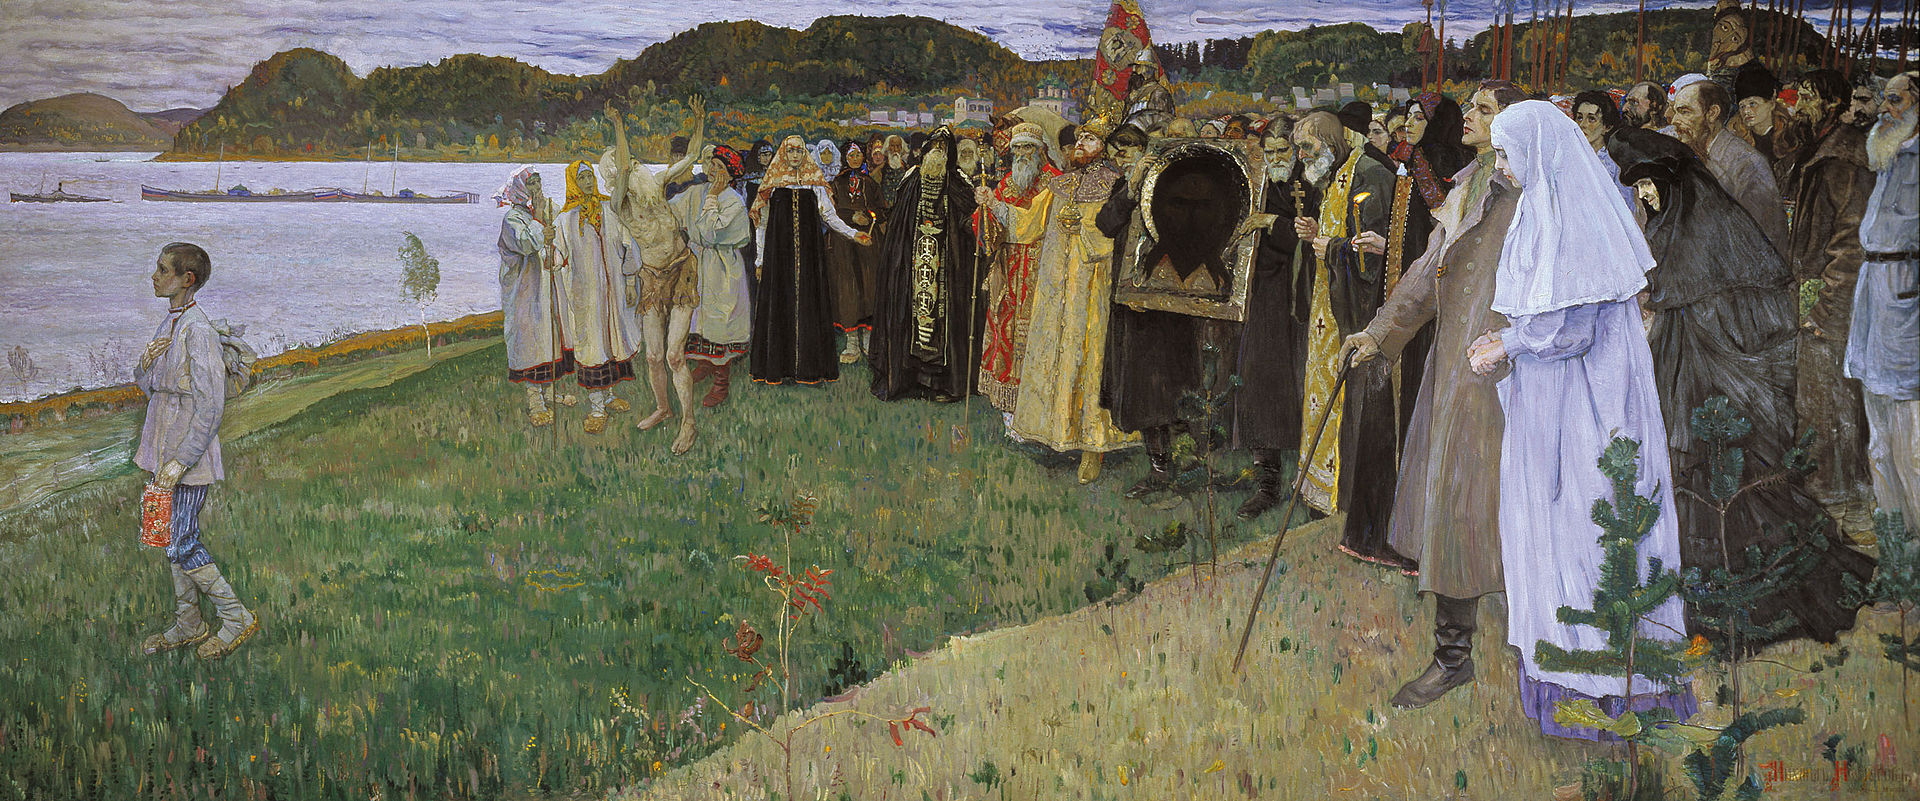 Mikhail Nesterov - The Soul of the People